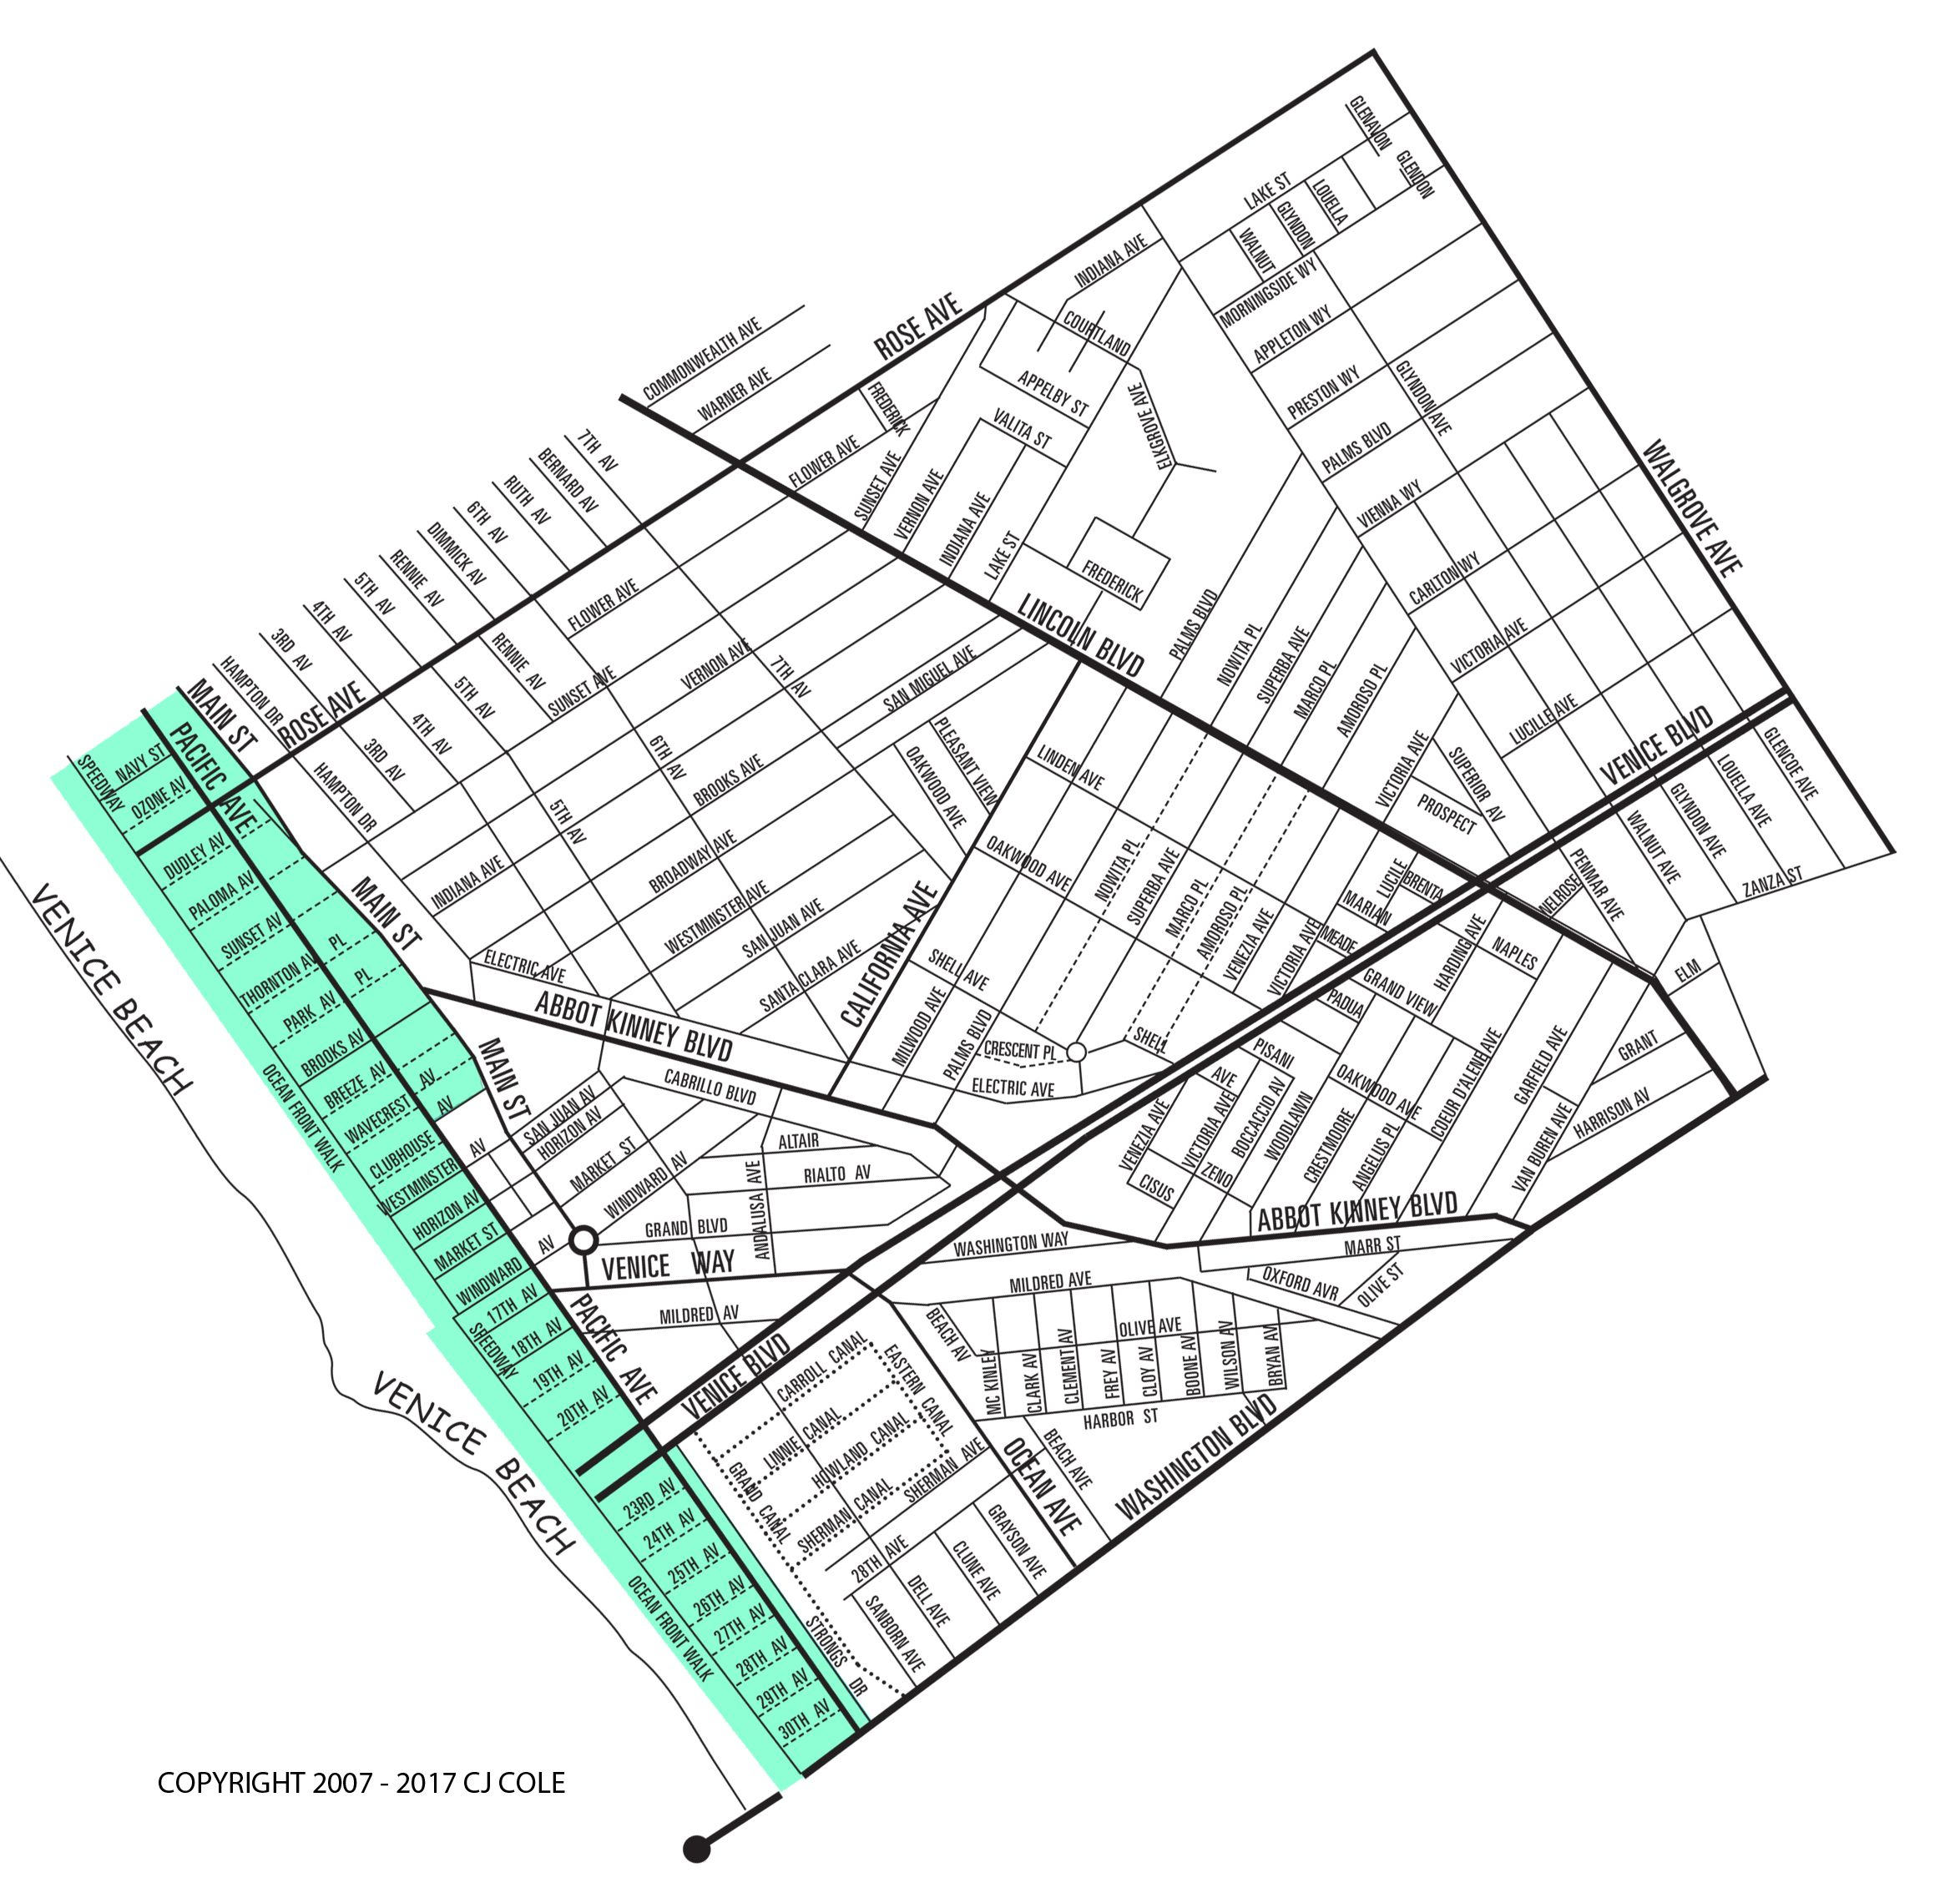 The Venice Beach Neighborhood Map